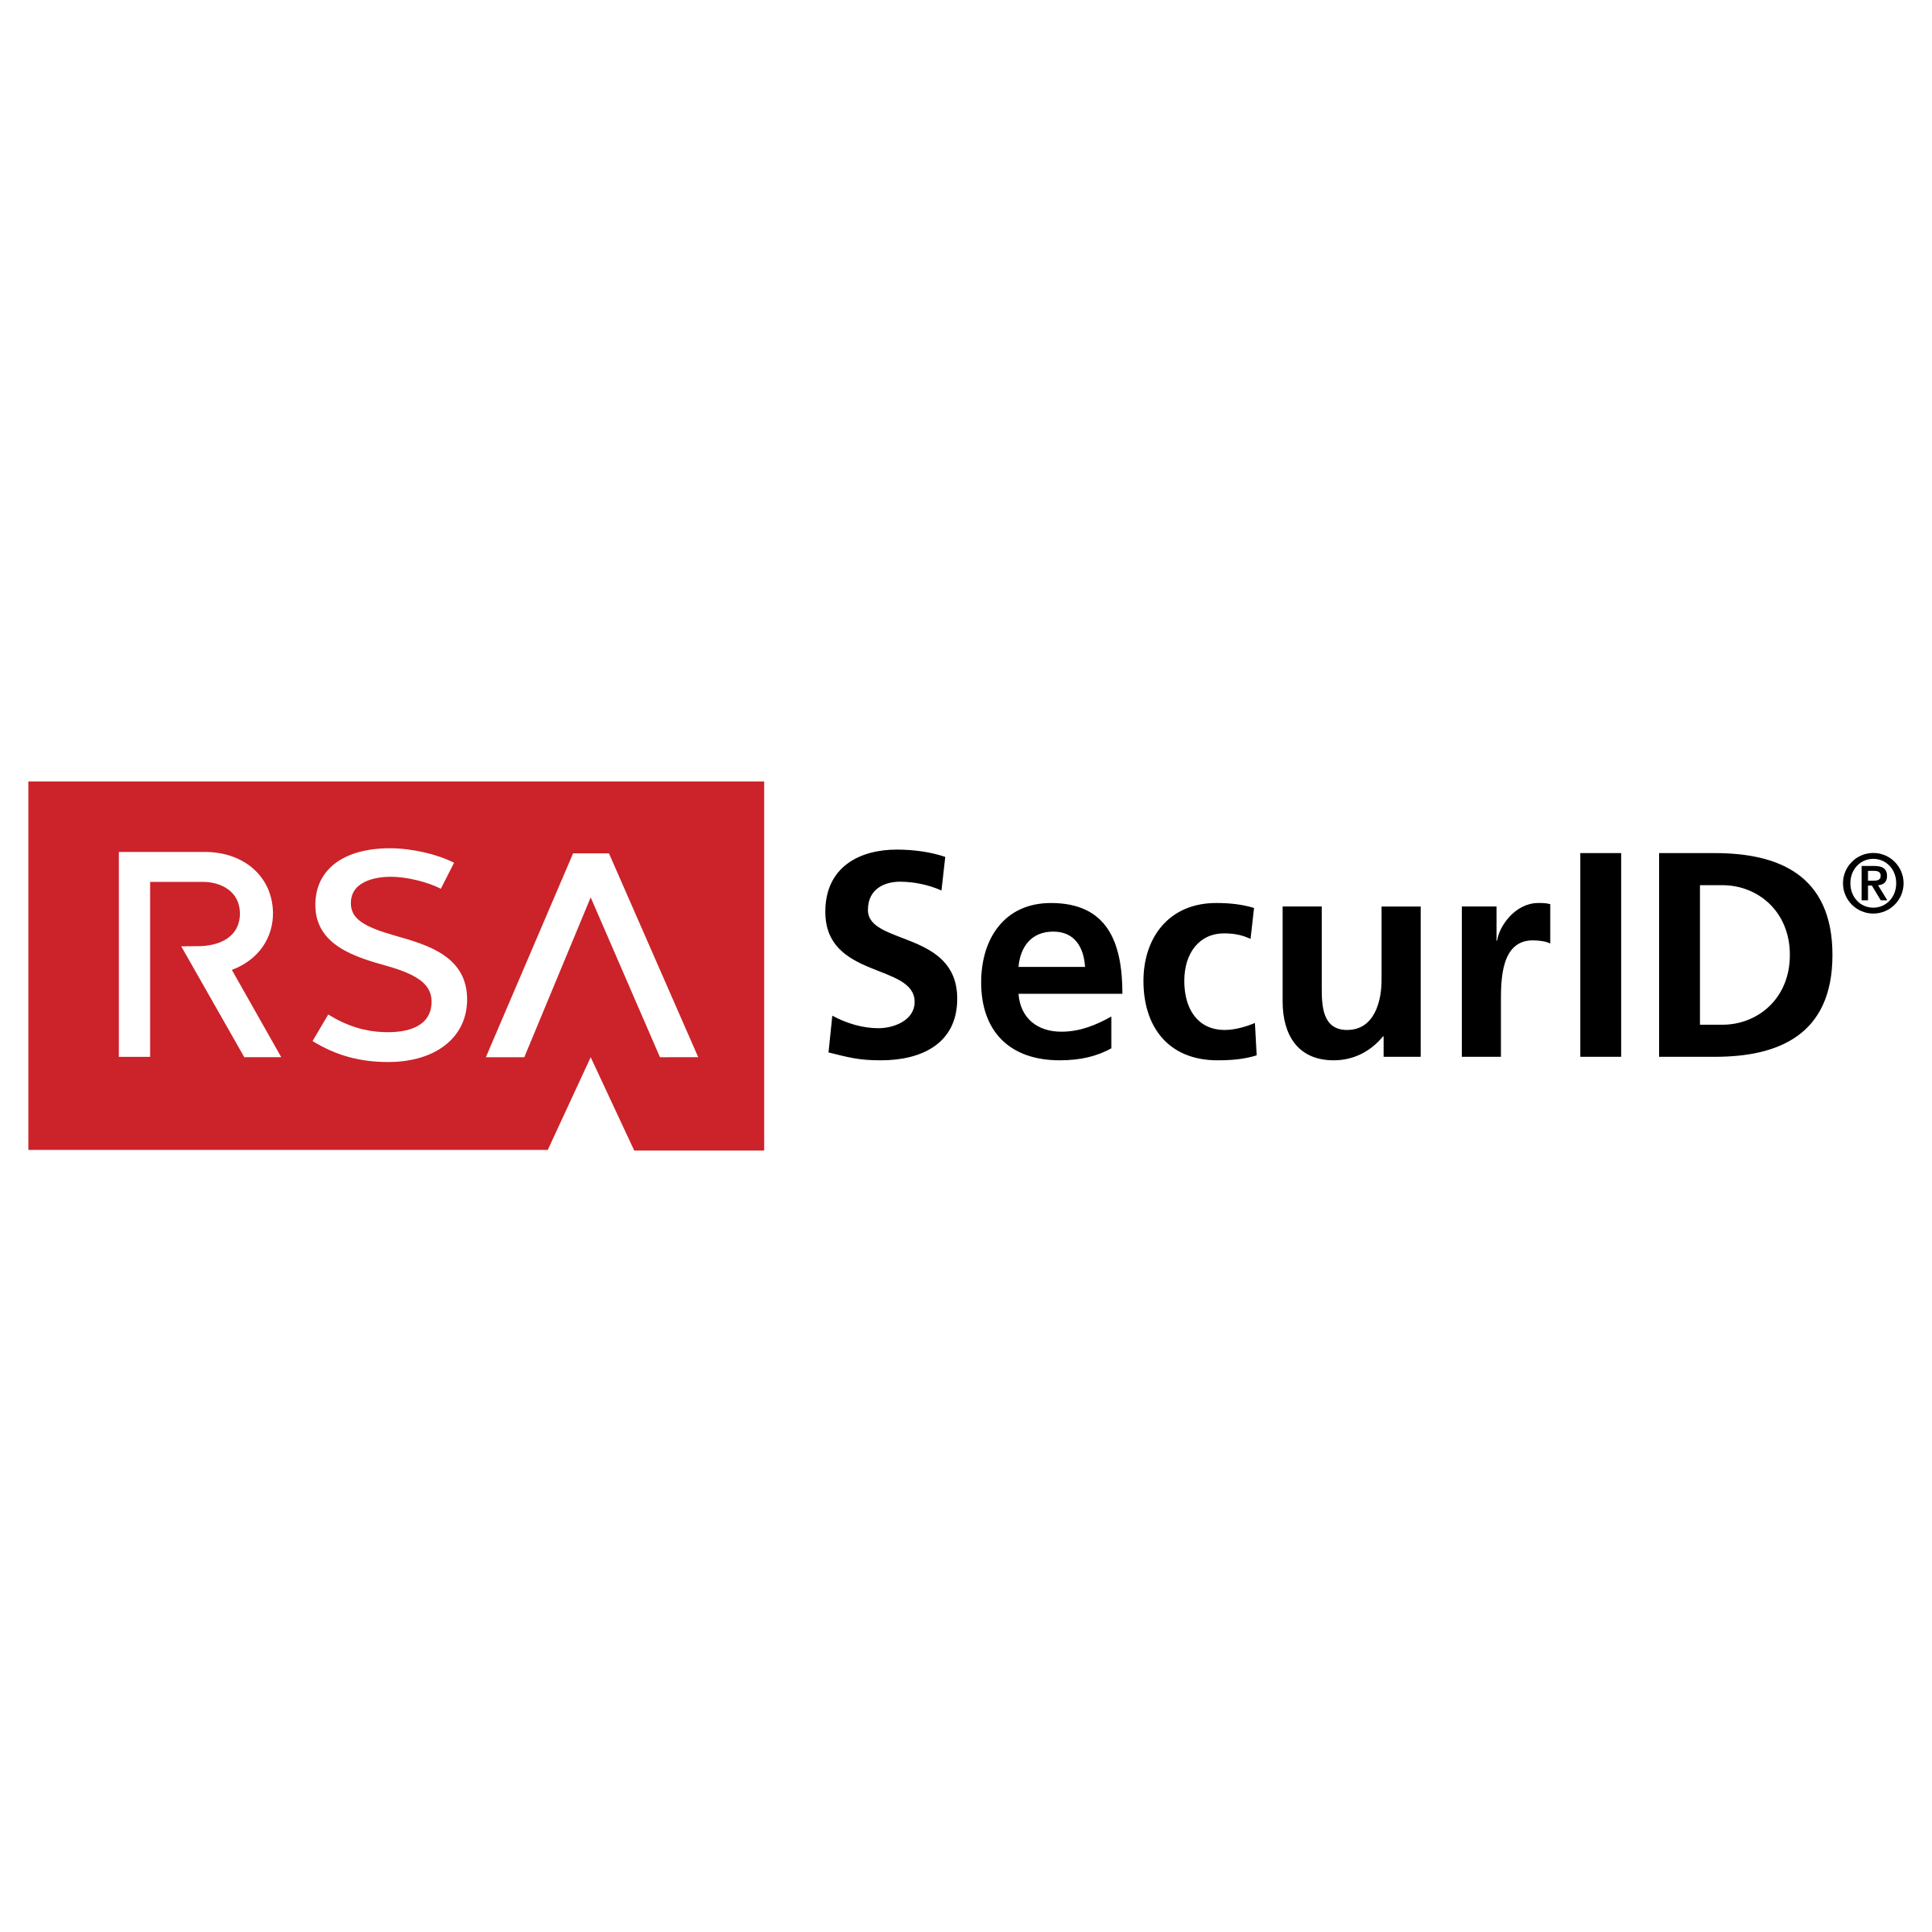 PNG Transparent - Rsa PNG